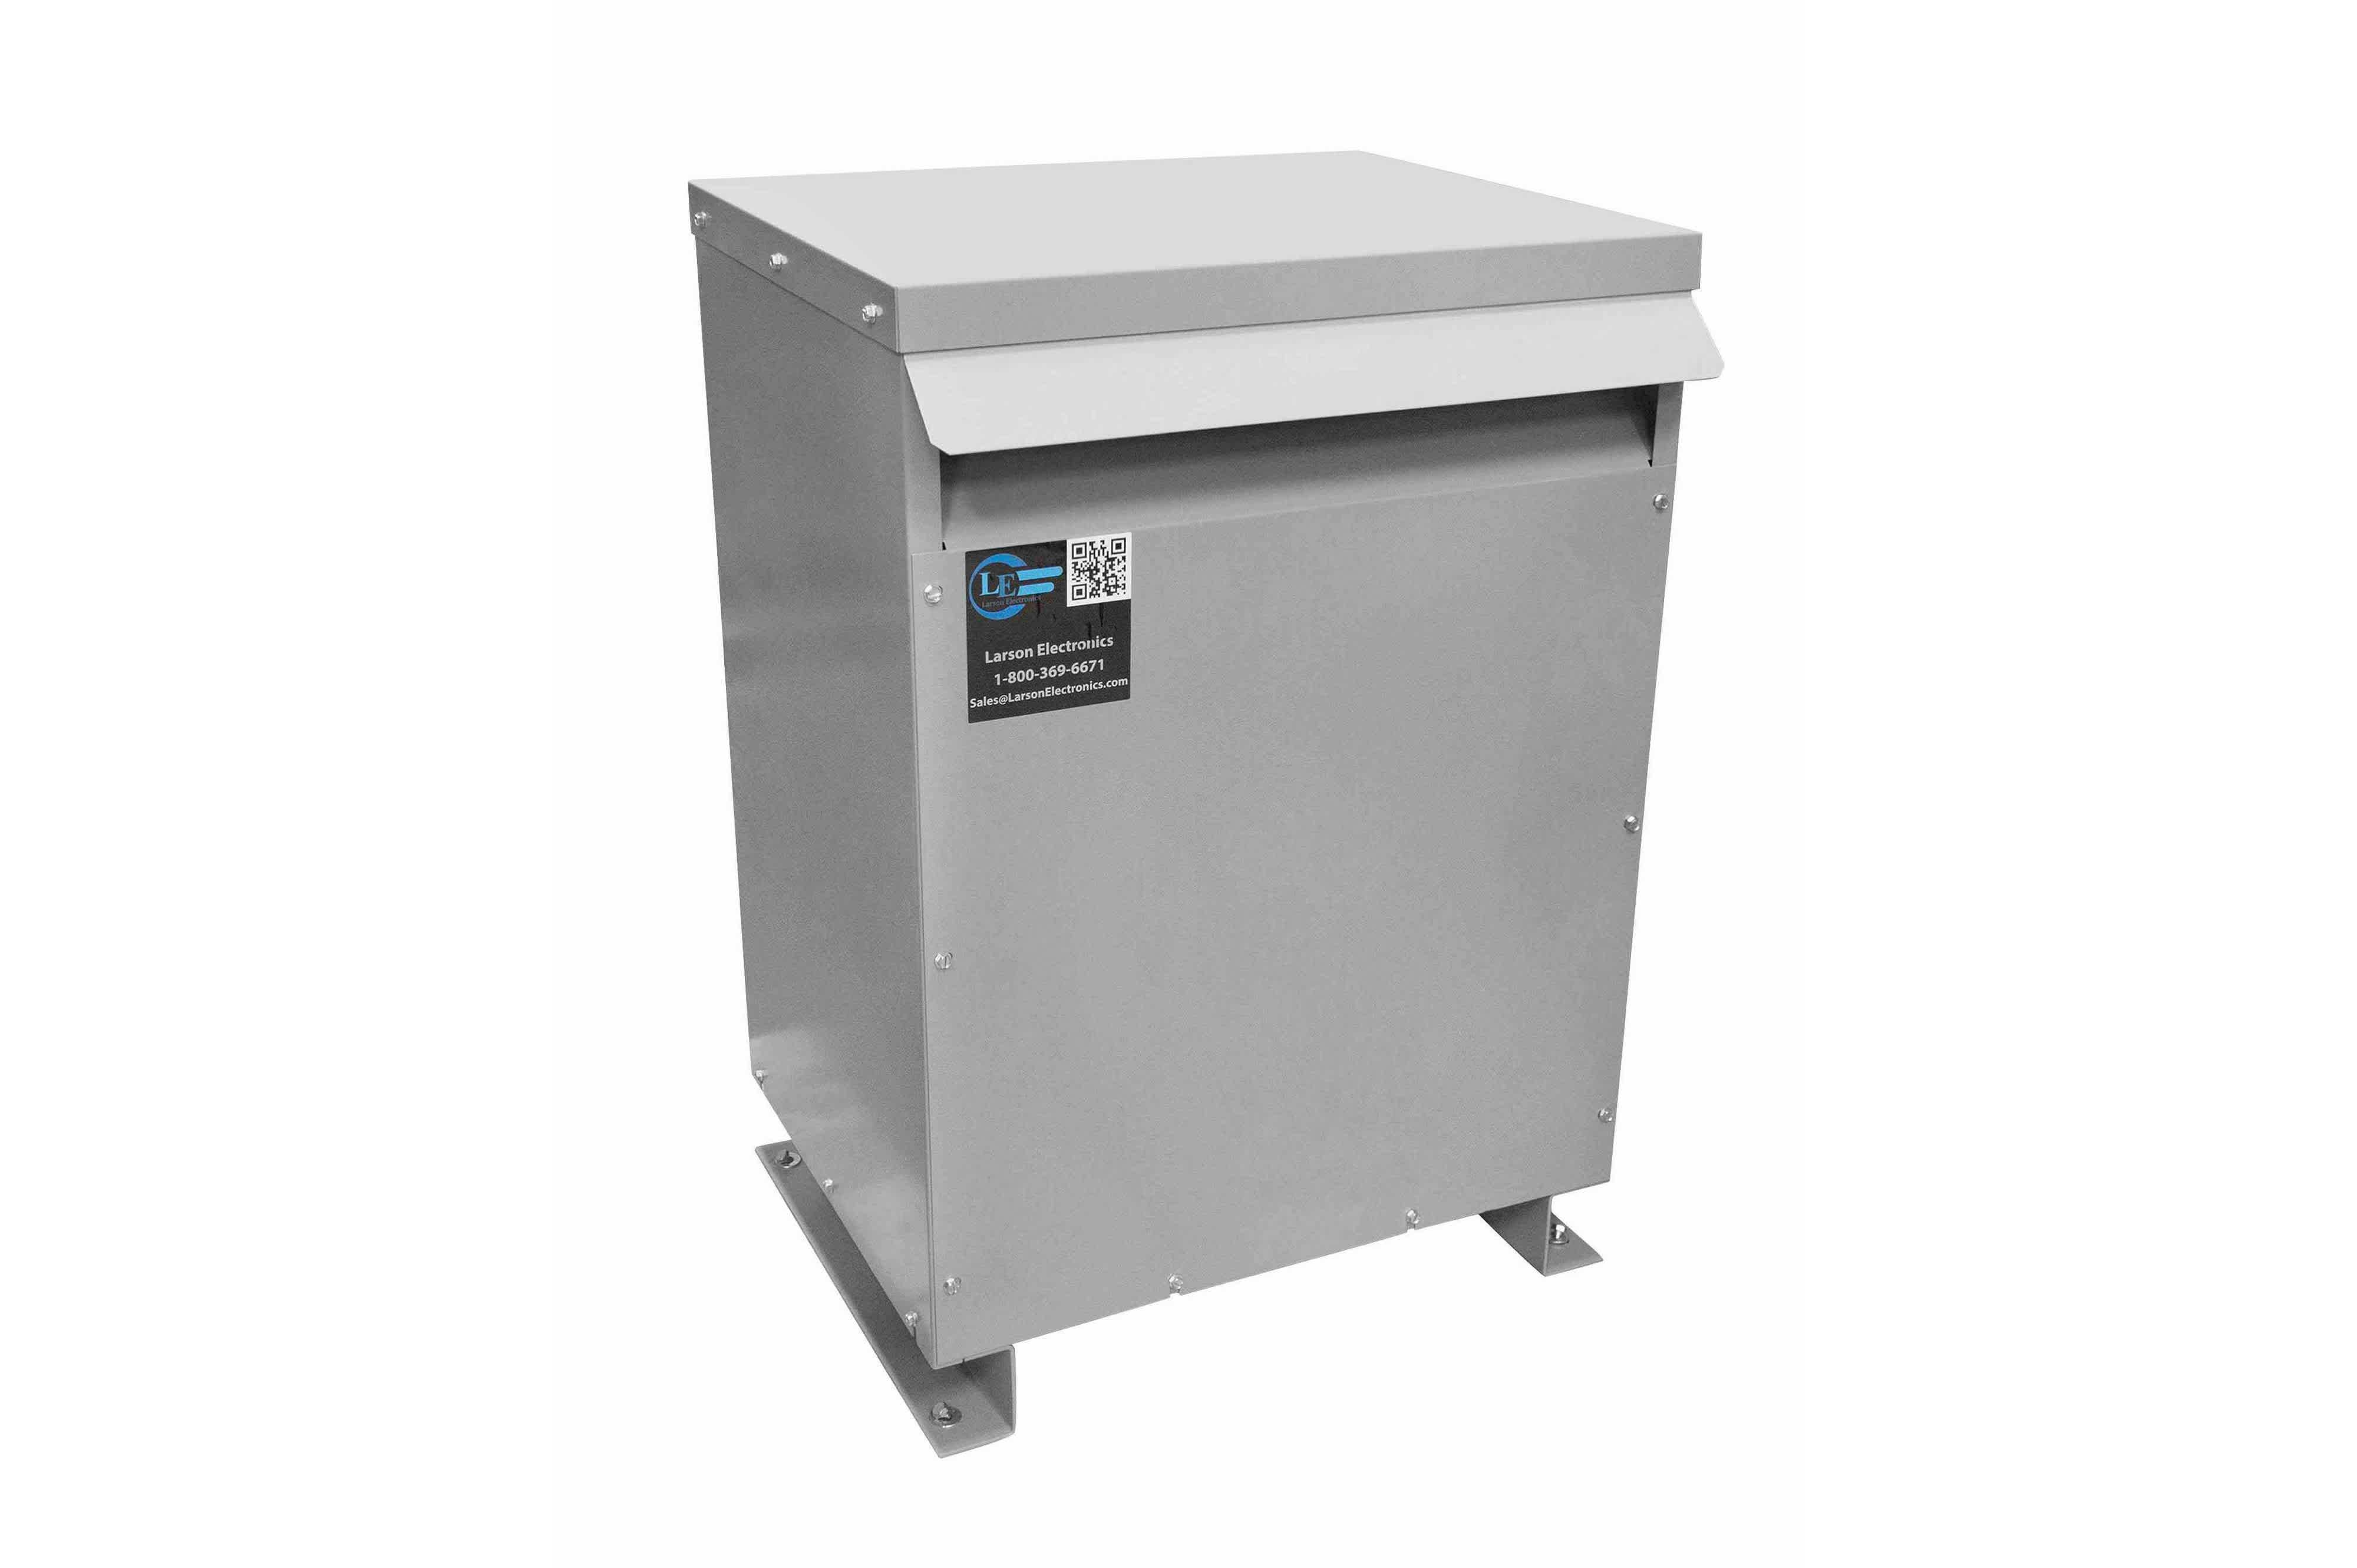 15 kVA 3PH Isolation Transformer, 480V Delta Primary, 415V Delta Secondary, N3R, Ventilated, 60 Hz